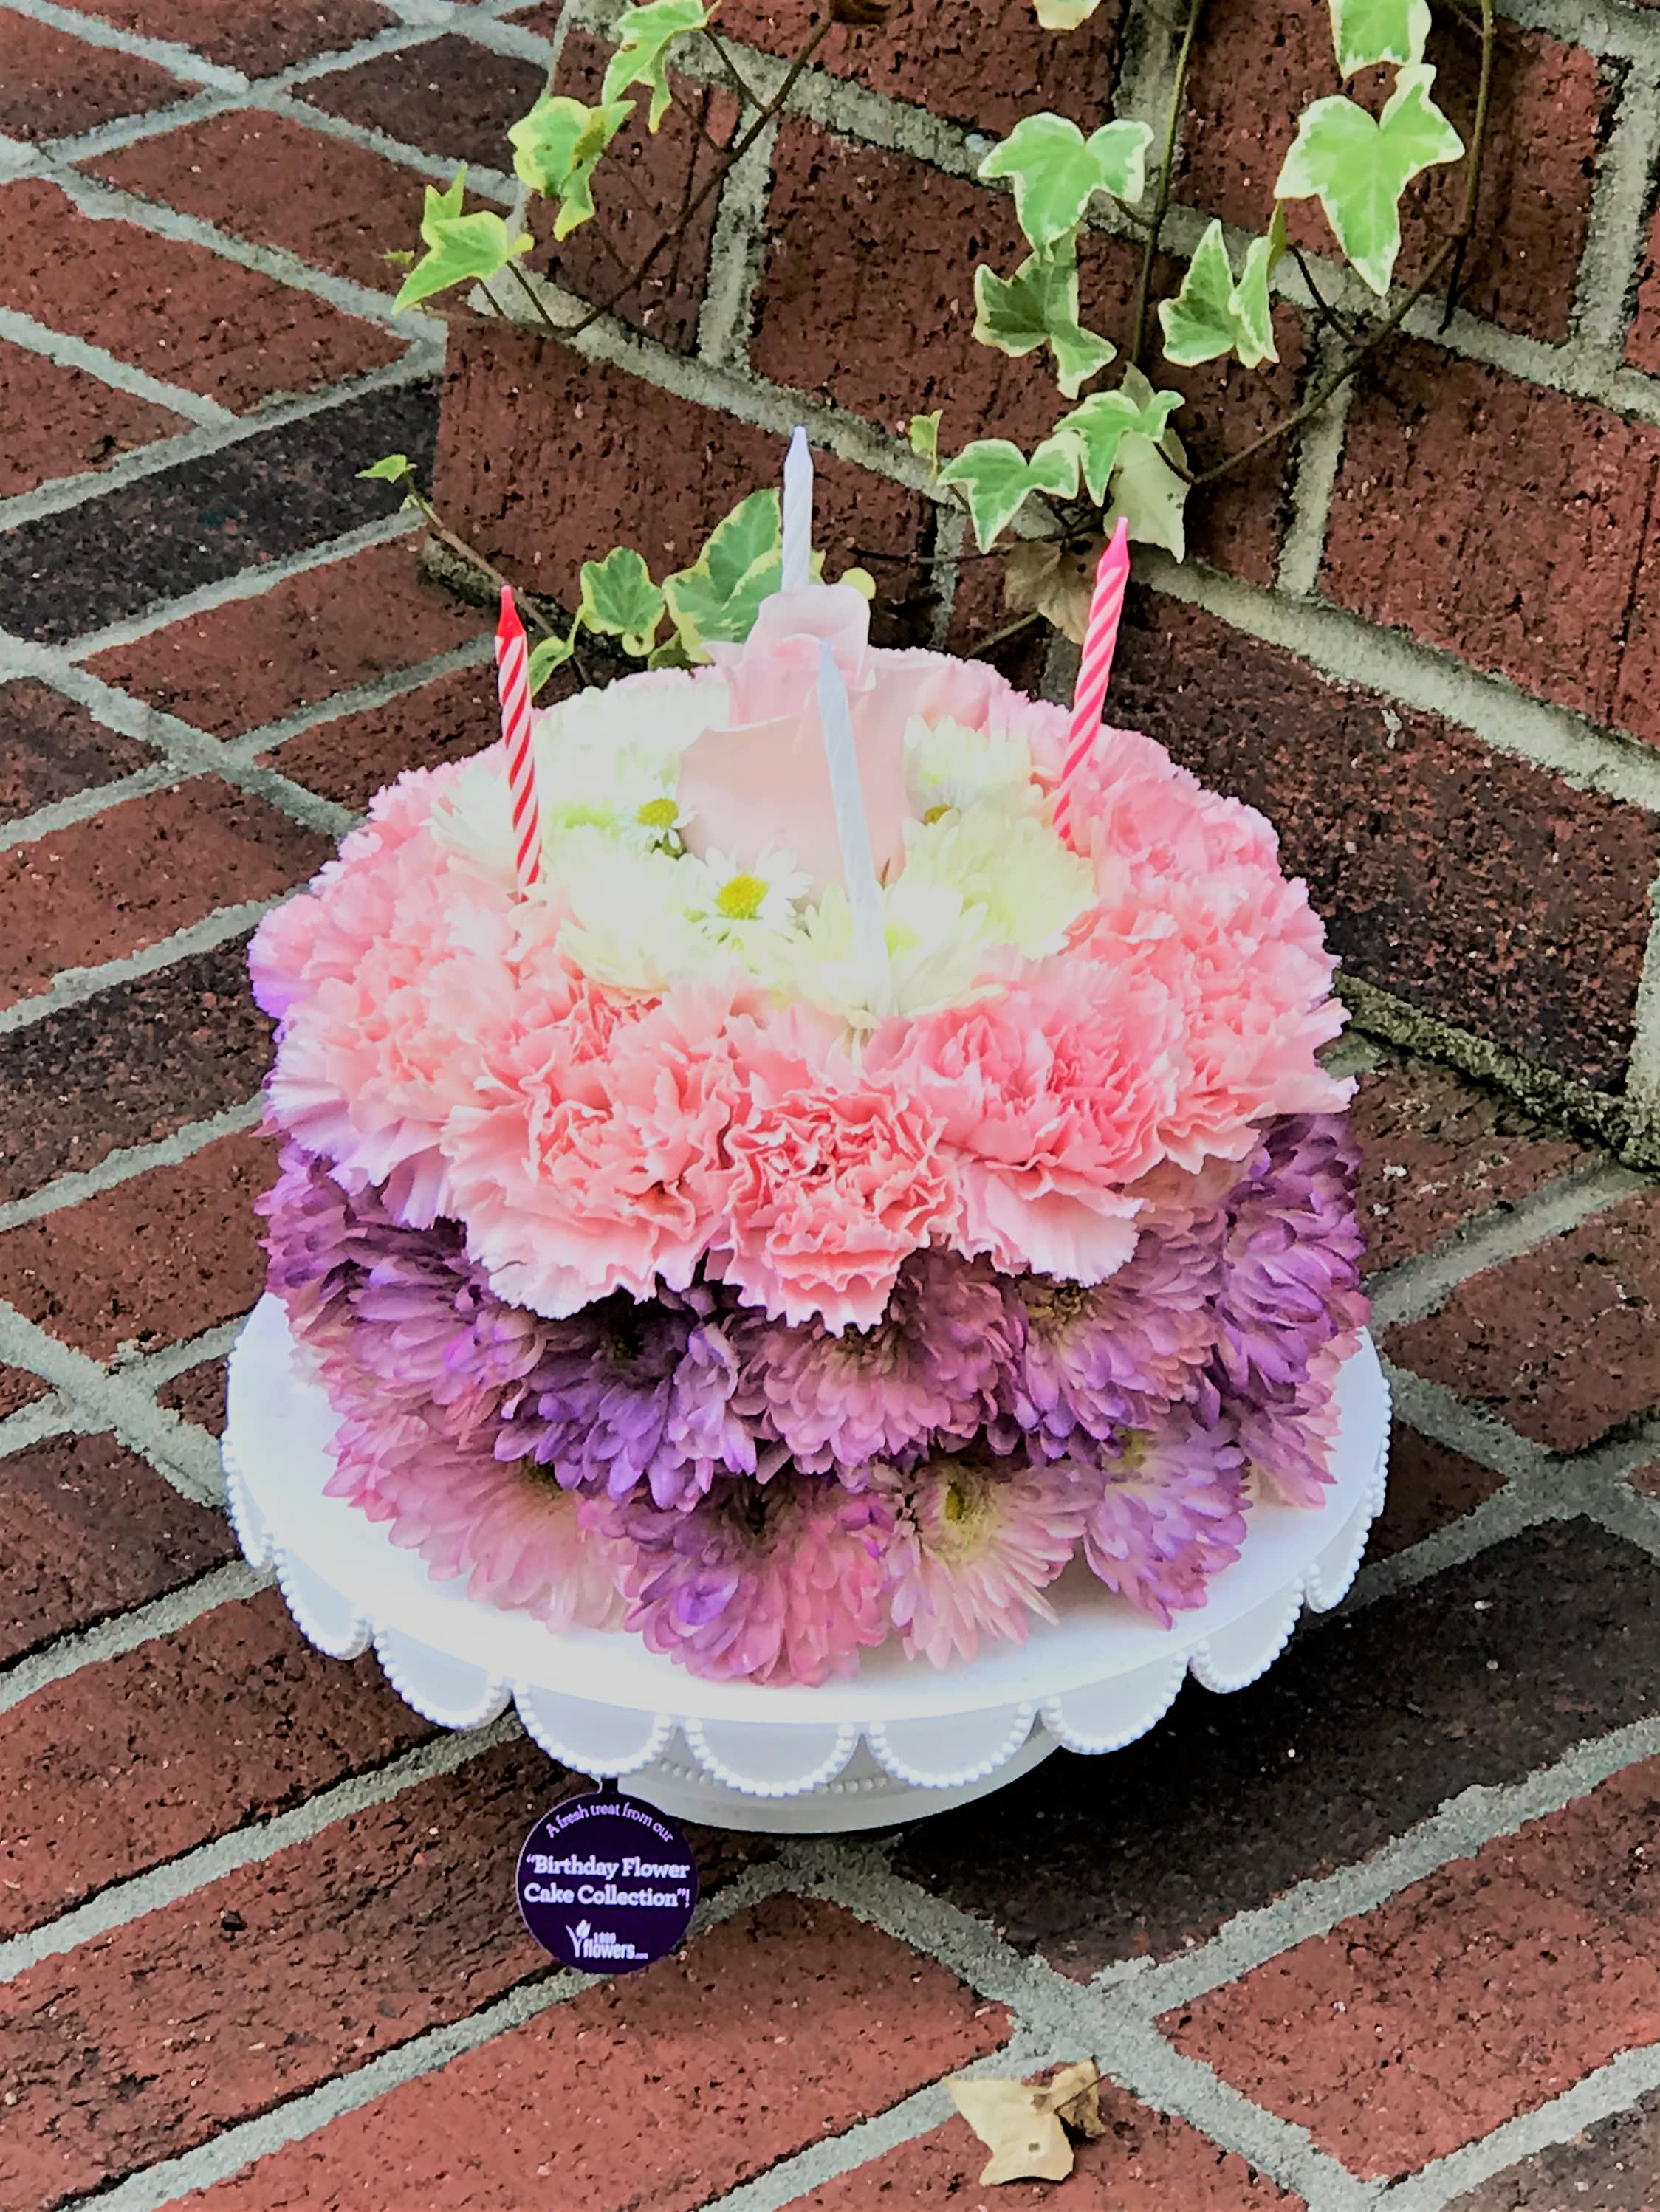 Birthday Flower Cake Made From Carnations Daisies Poms And Roses